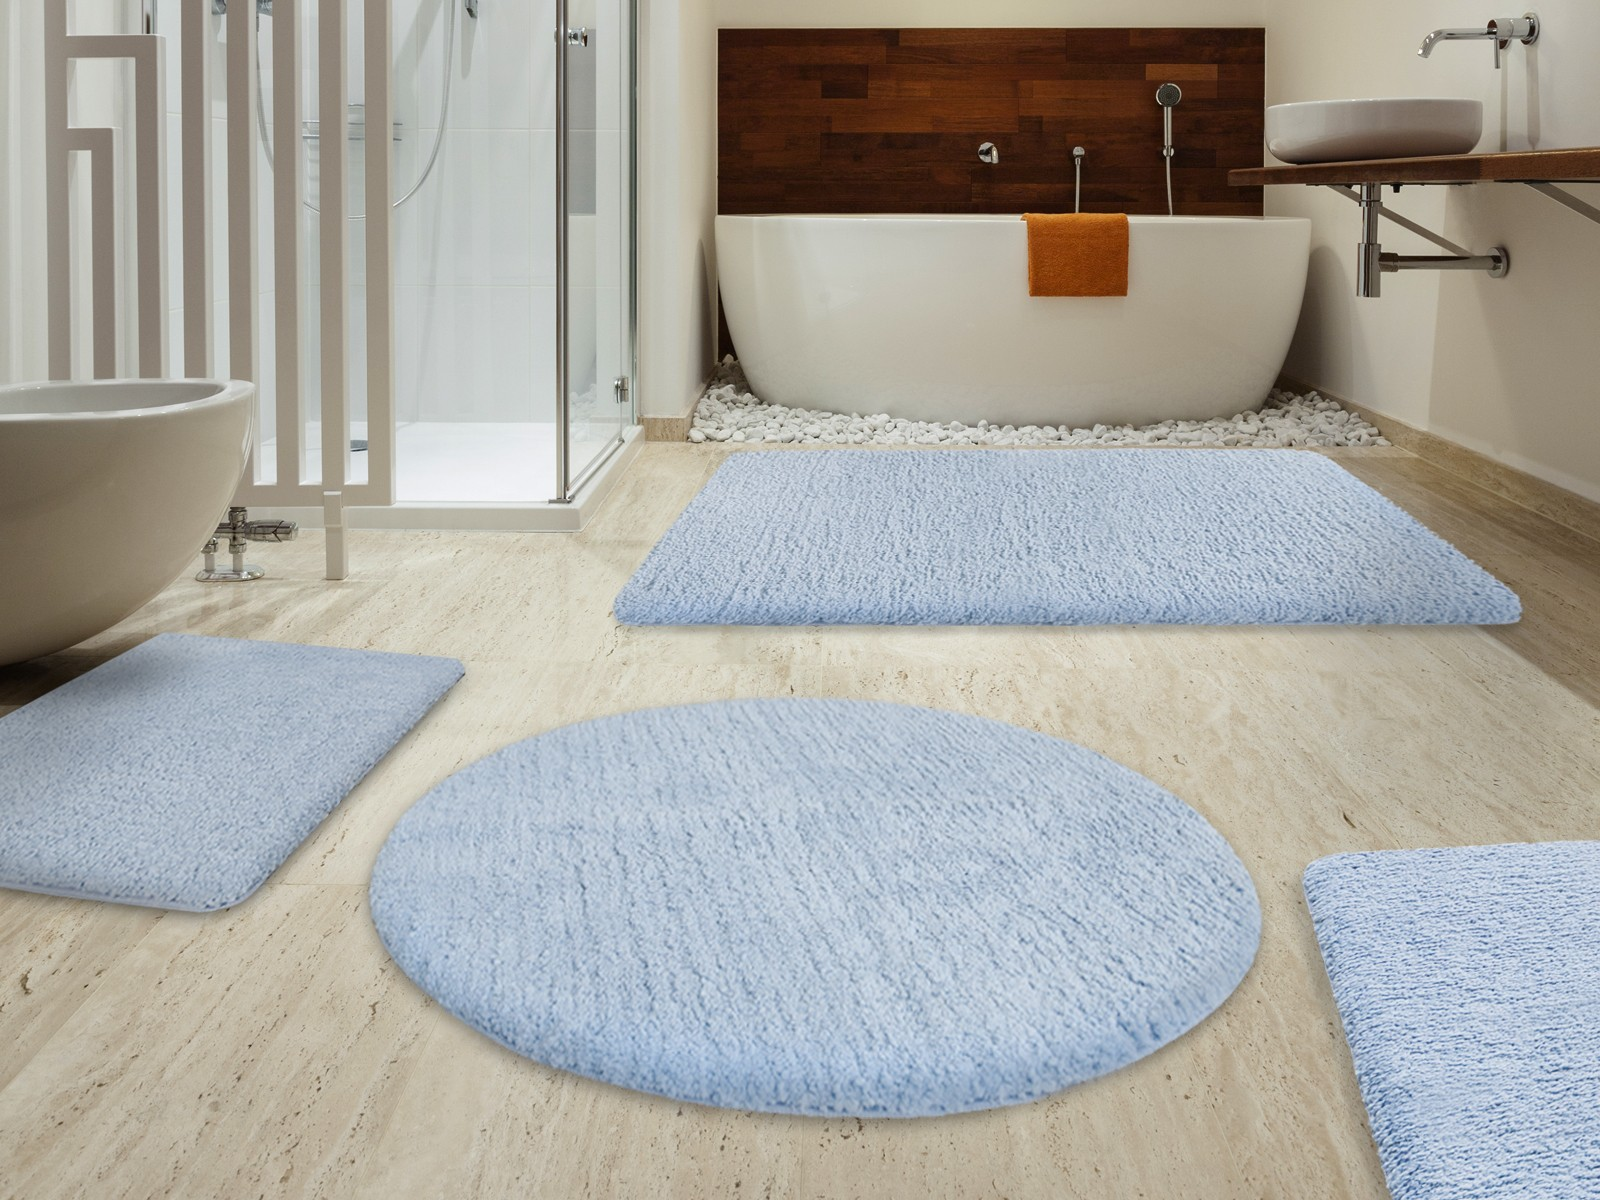 Mesmerizing Bath Mat Set Floor Interior For Bathroom Ideas